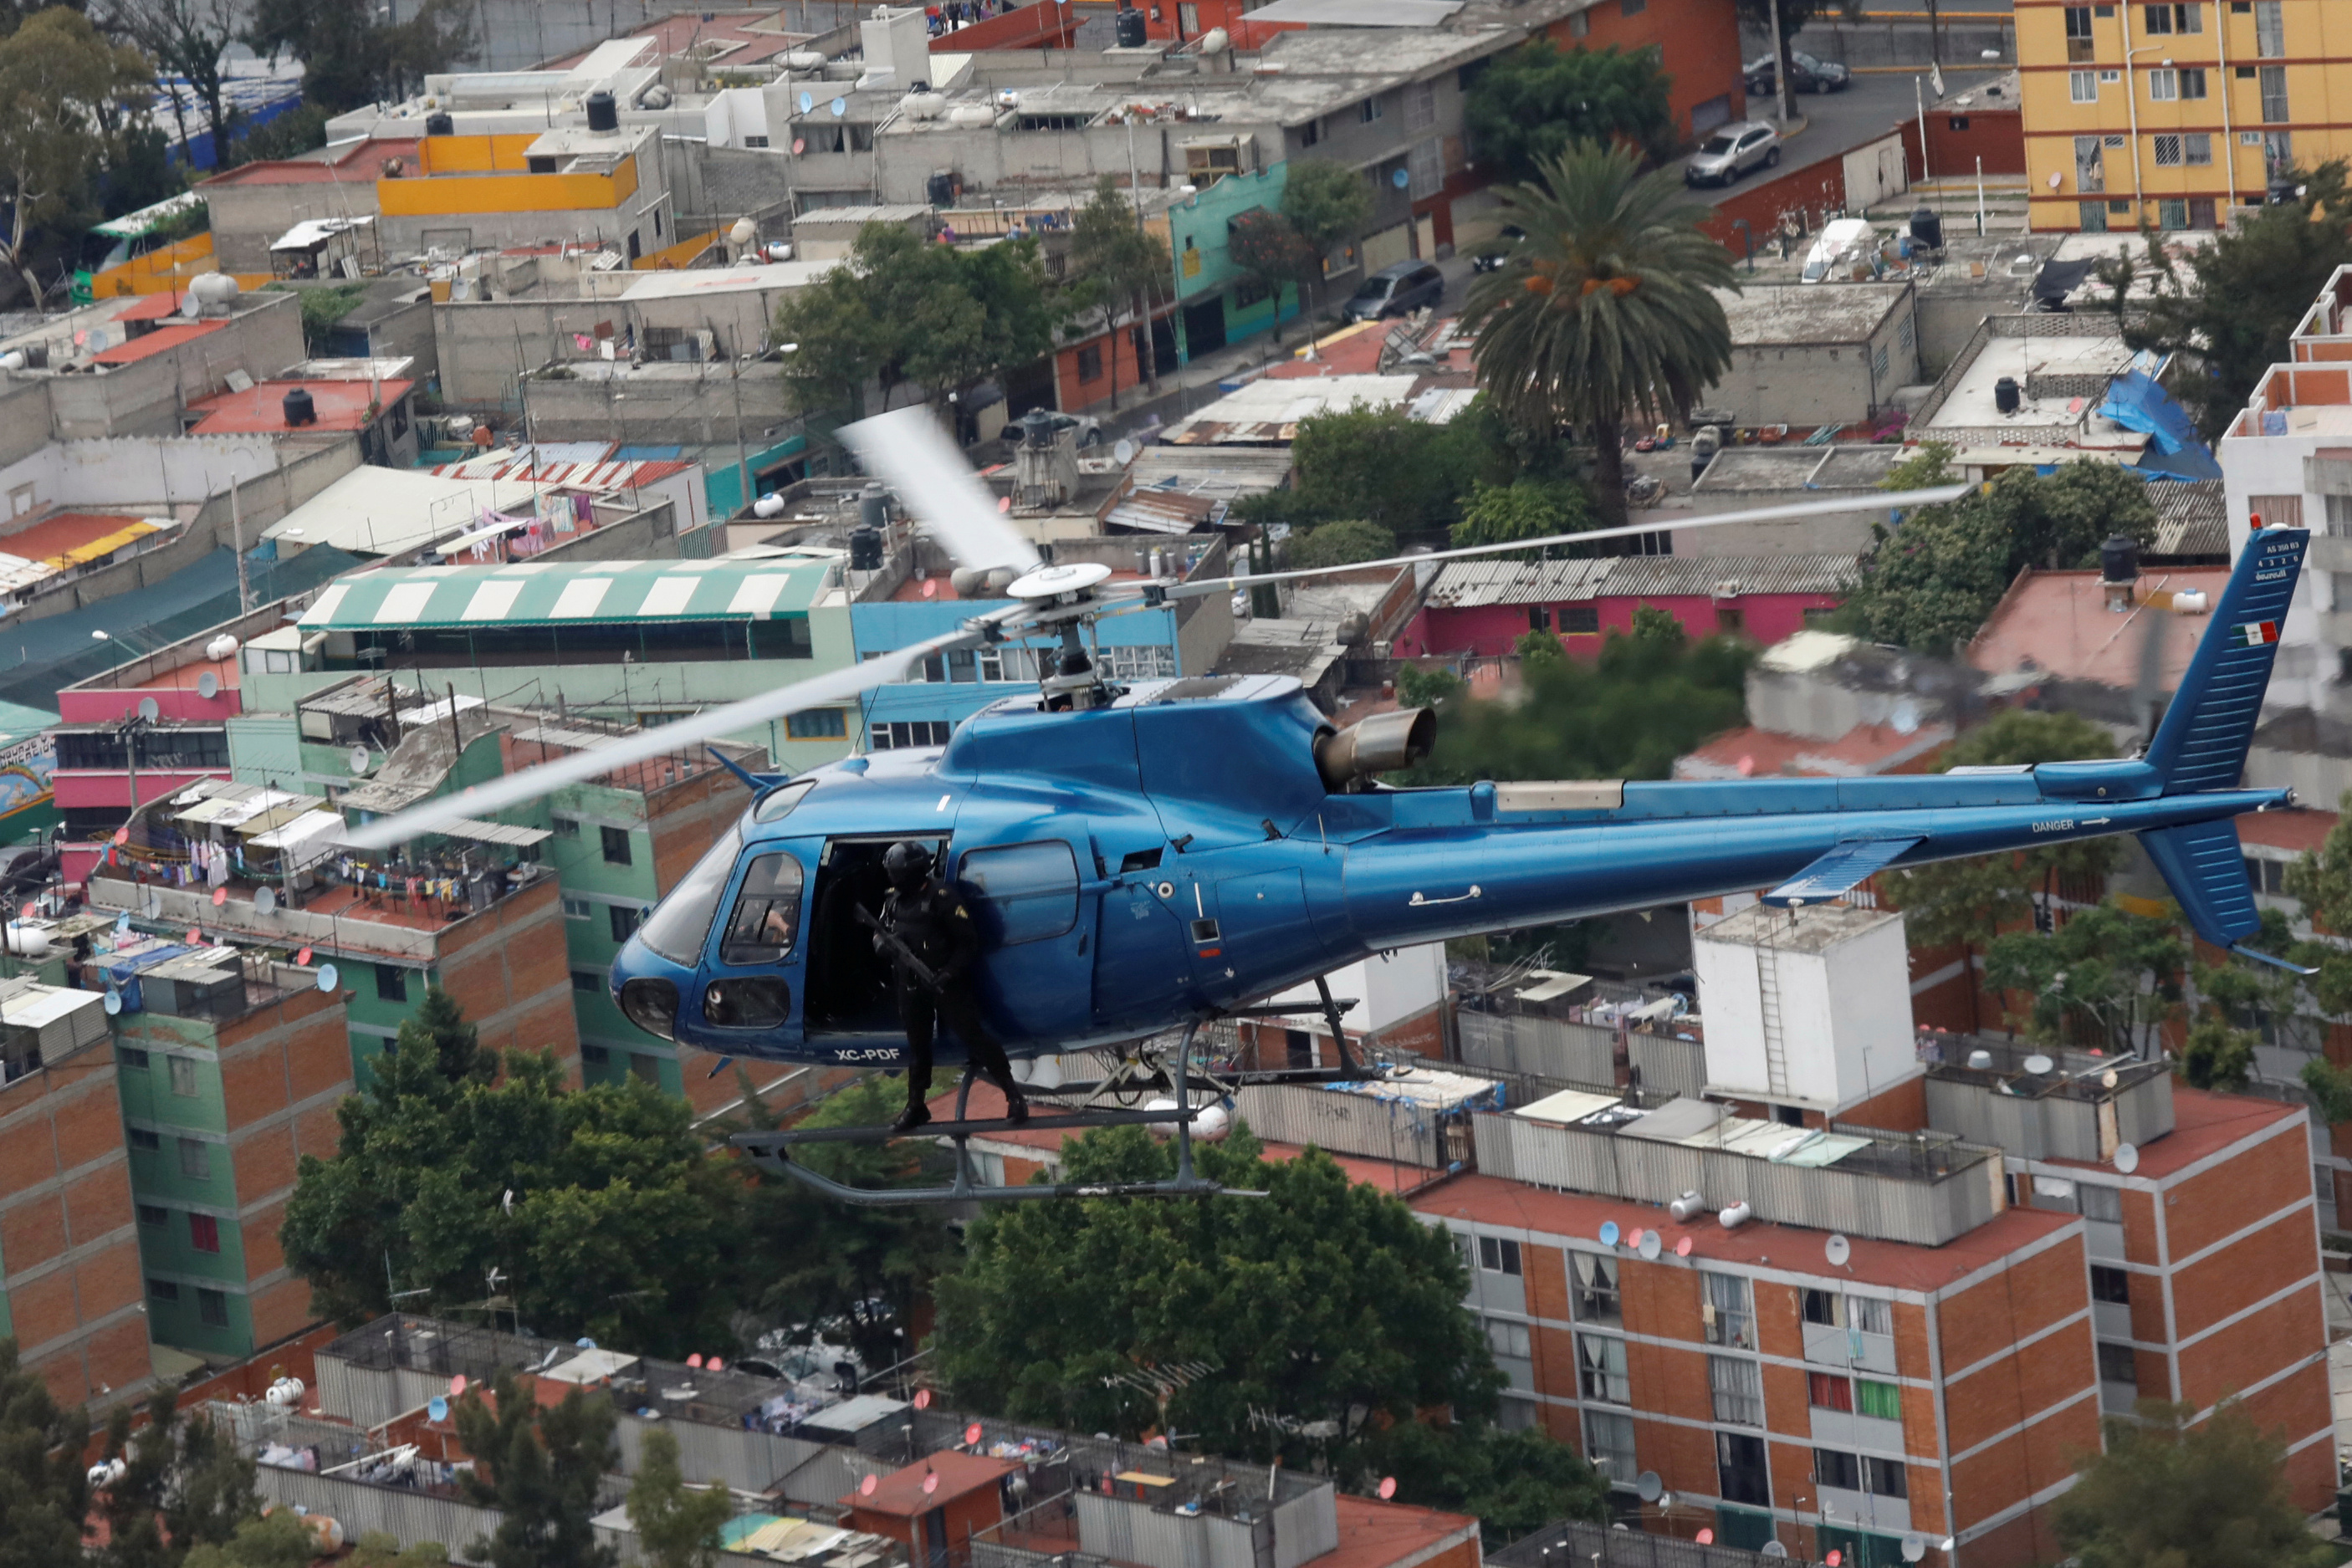 """Police officers, members of a team known as """"Condores"""", stand by the door of the helicopter during a patrol of the city, part of a new strategy to combat the crime in Mexico City, Mexico August 3, 2018. Picture taken August 3, 2018. REUTERS/Carlos Jasso - RC1ADE095290"""